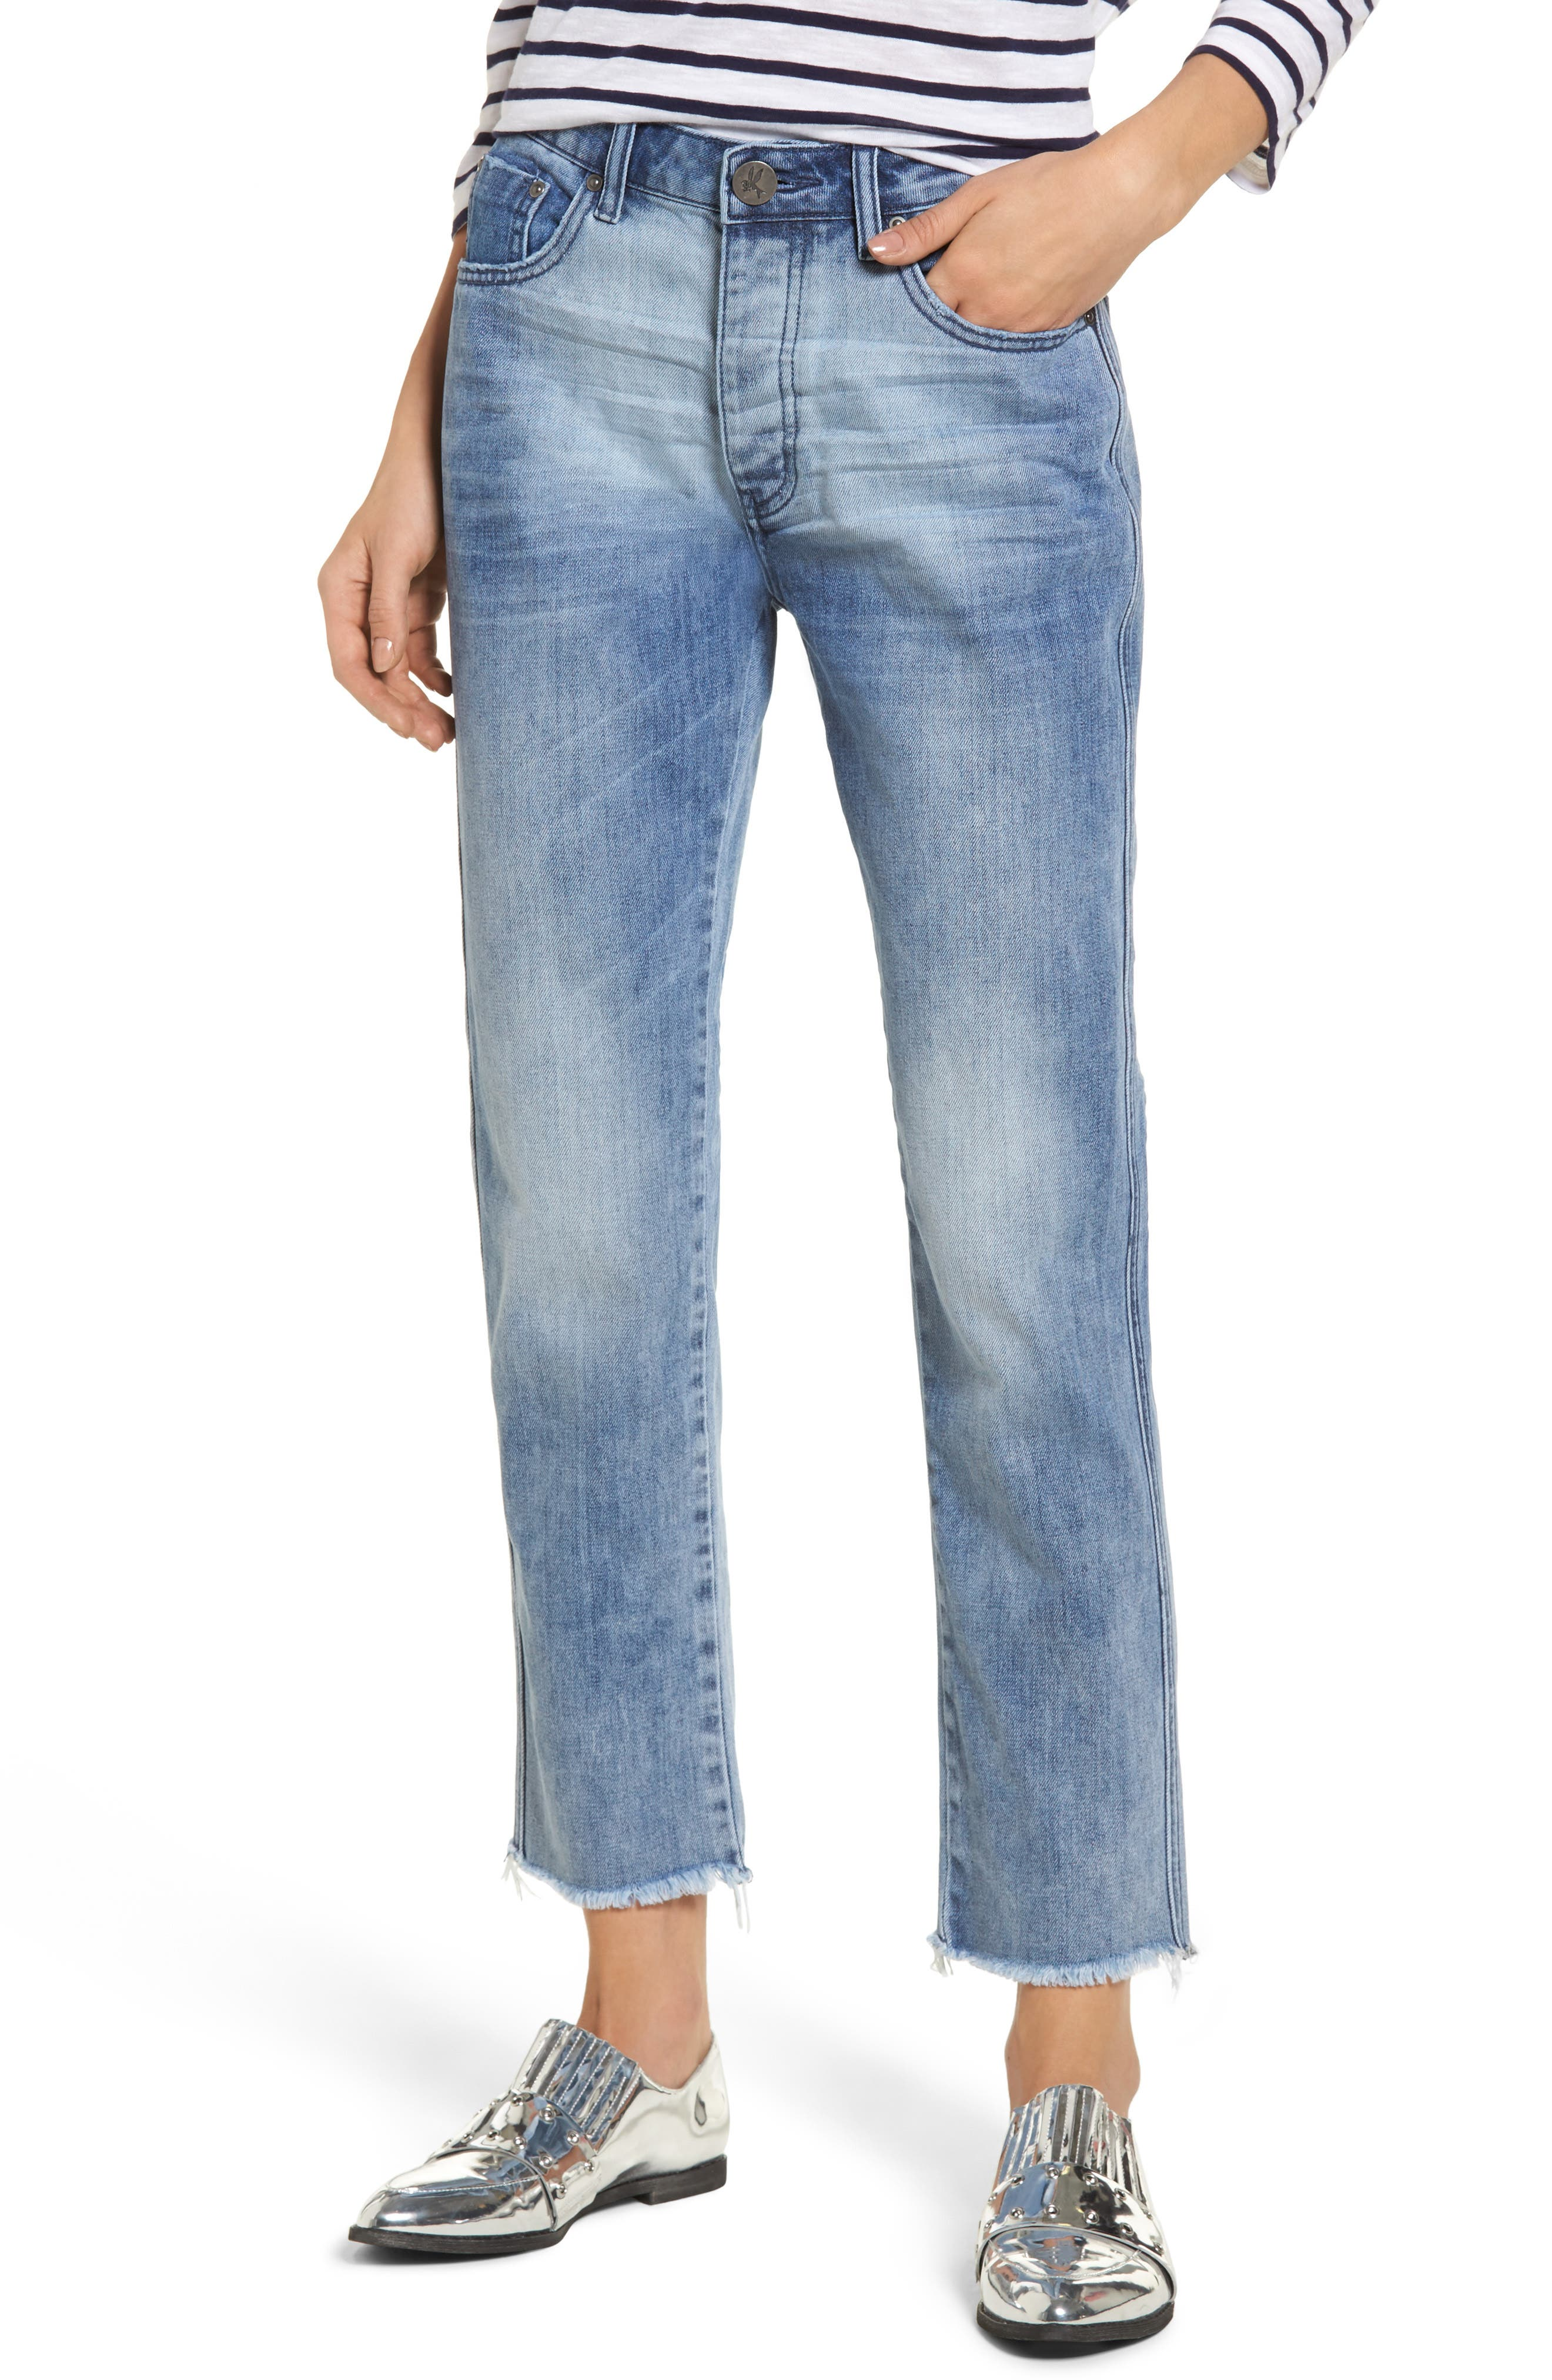 One Teaspoon Tuckers High Waist Straight Leg Jeans